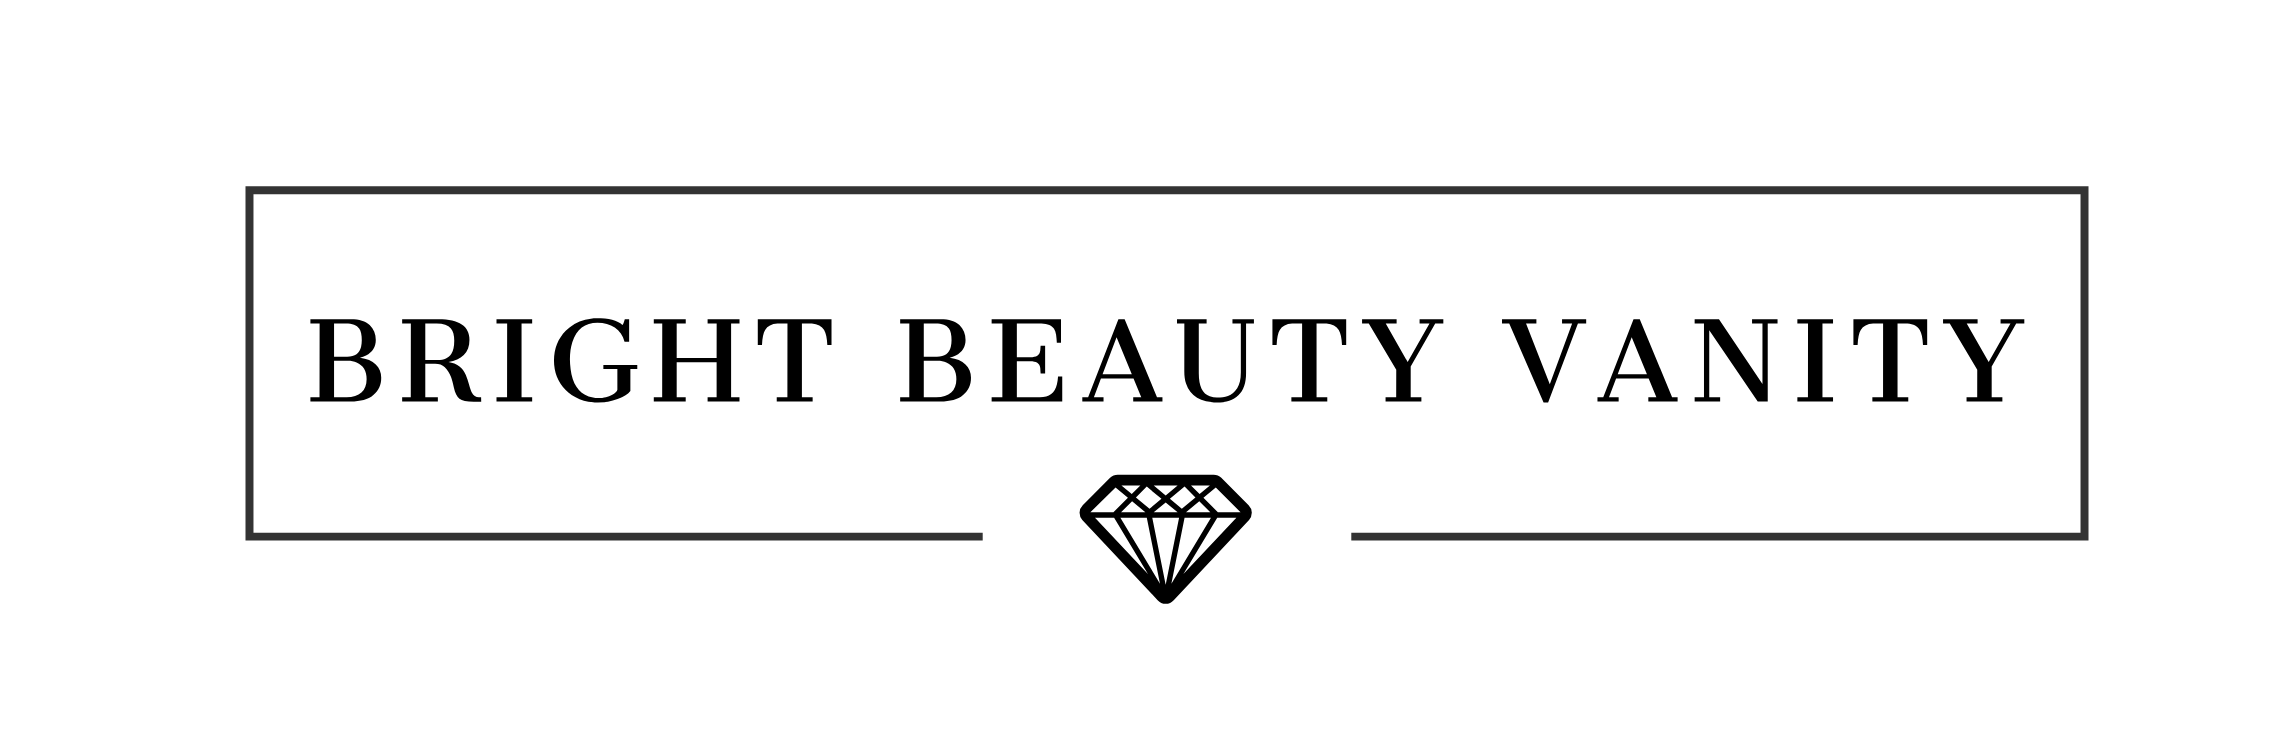 Bright Beauty Vanity